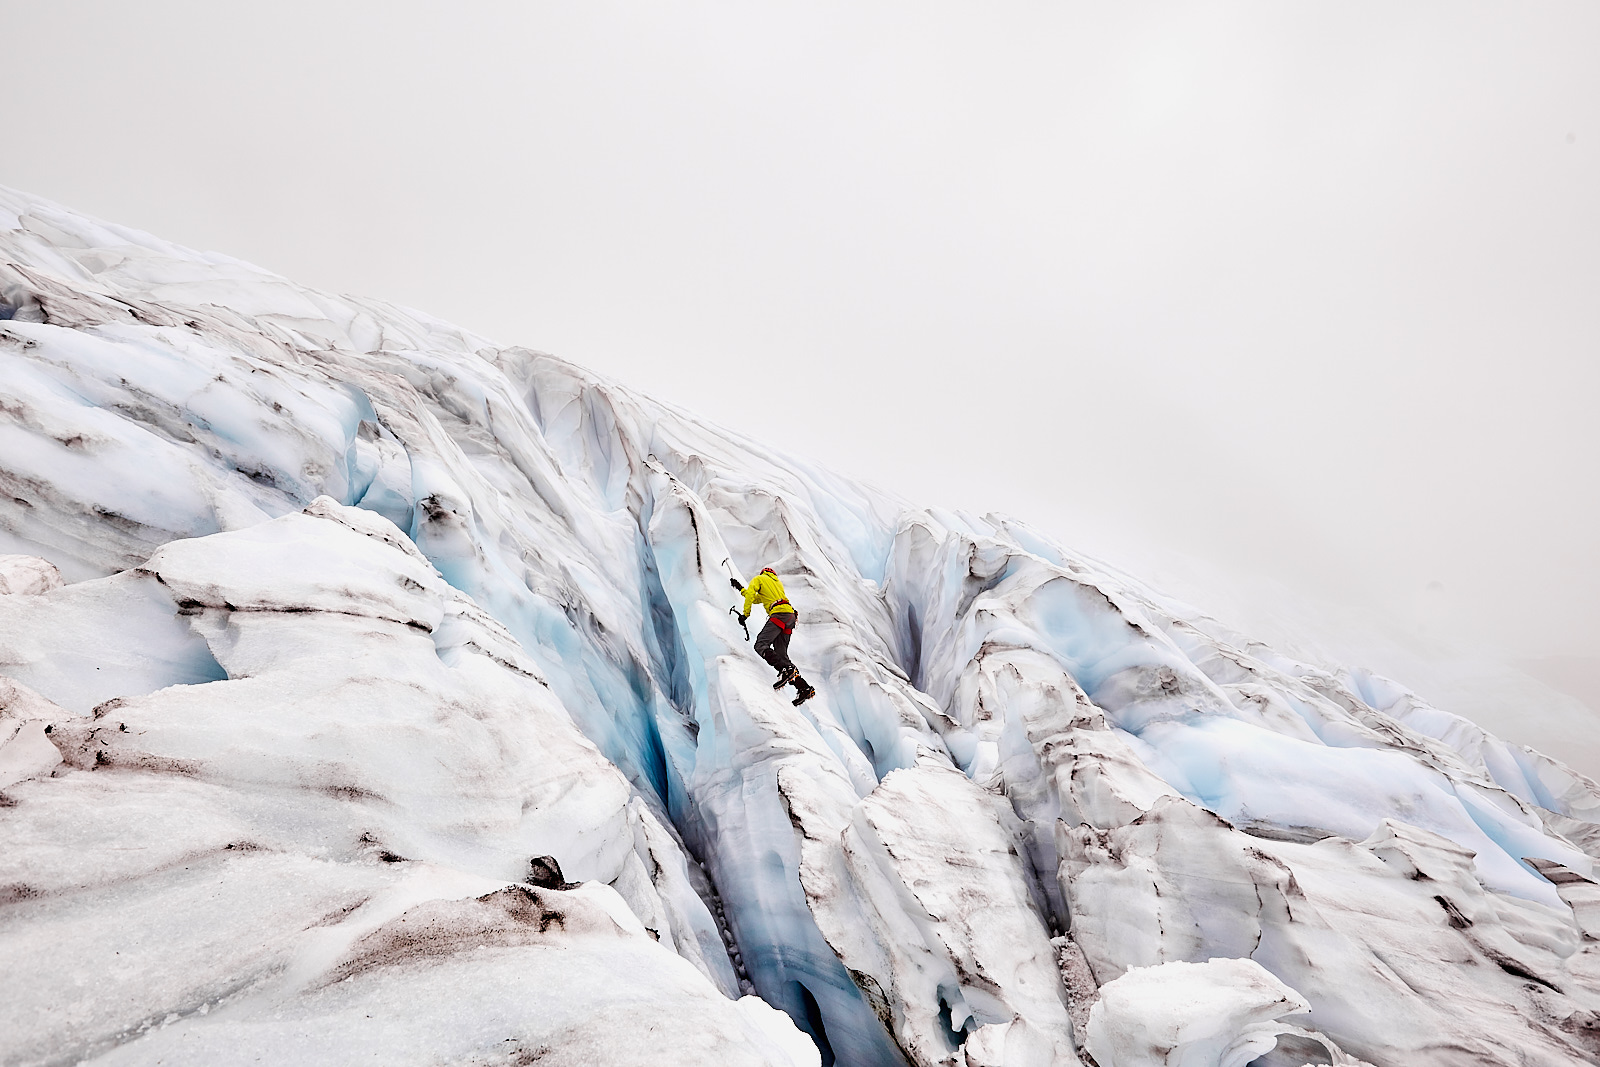 Climbing on the glacier